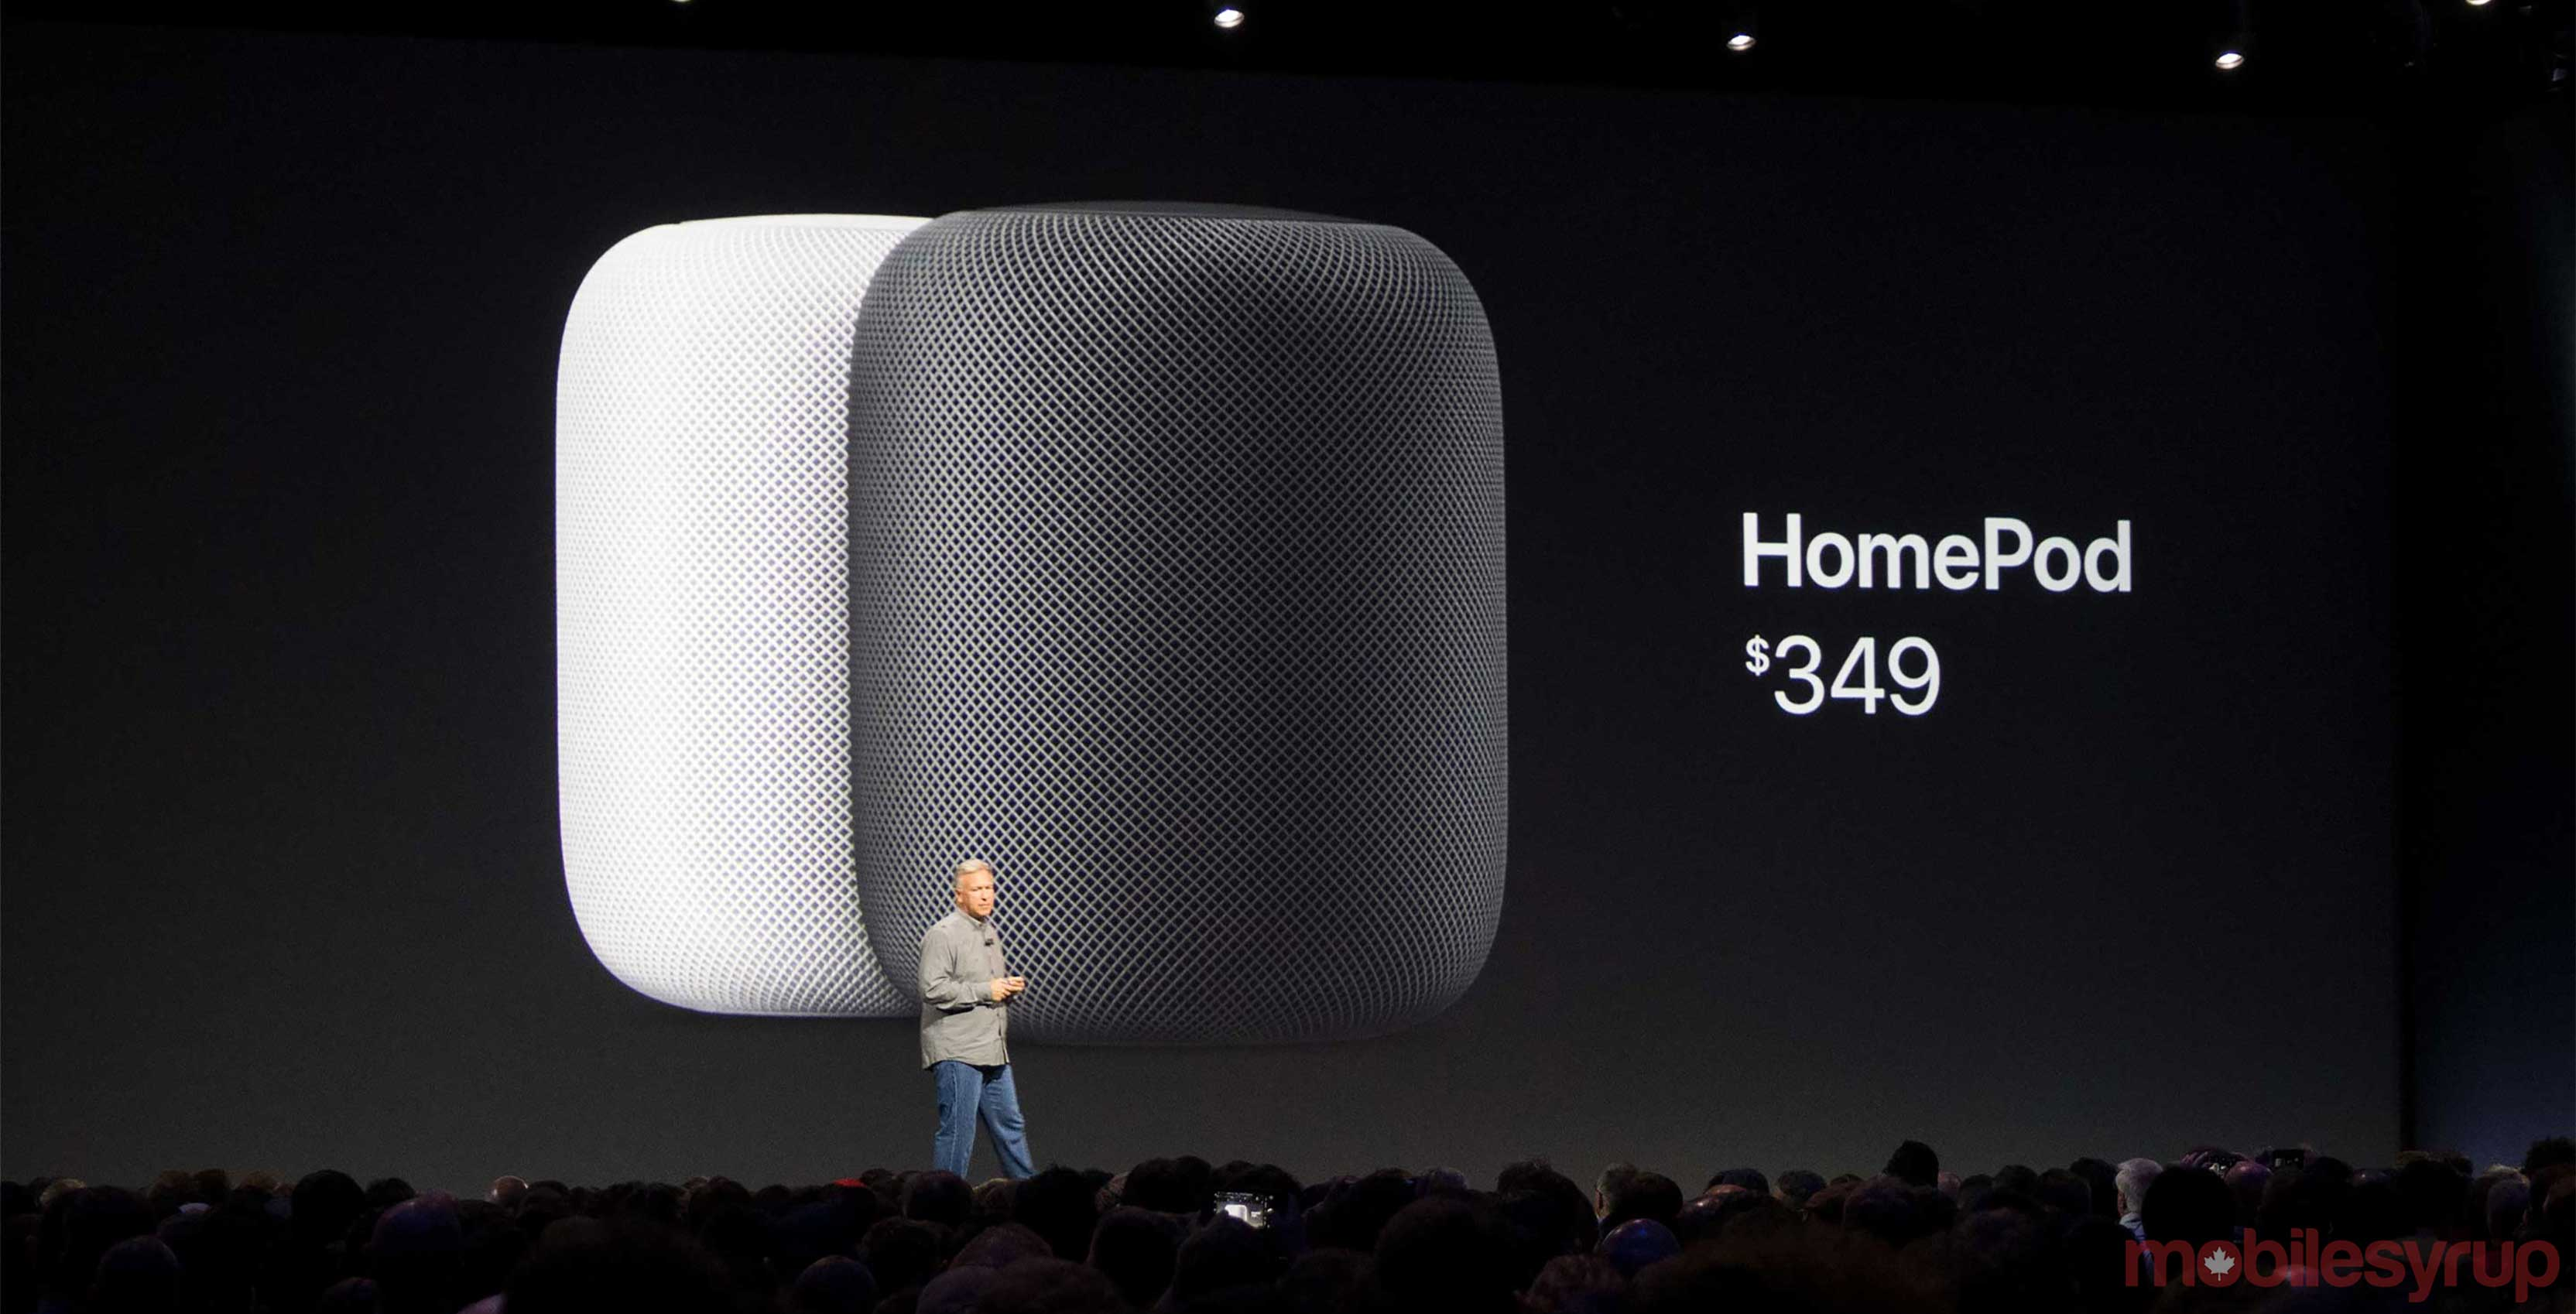 Uh oh! Apple's HomePod can stain some wood furniture